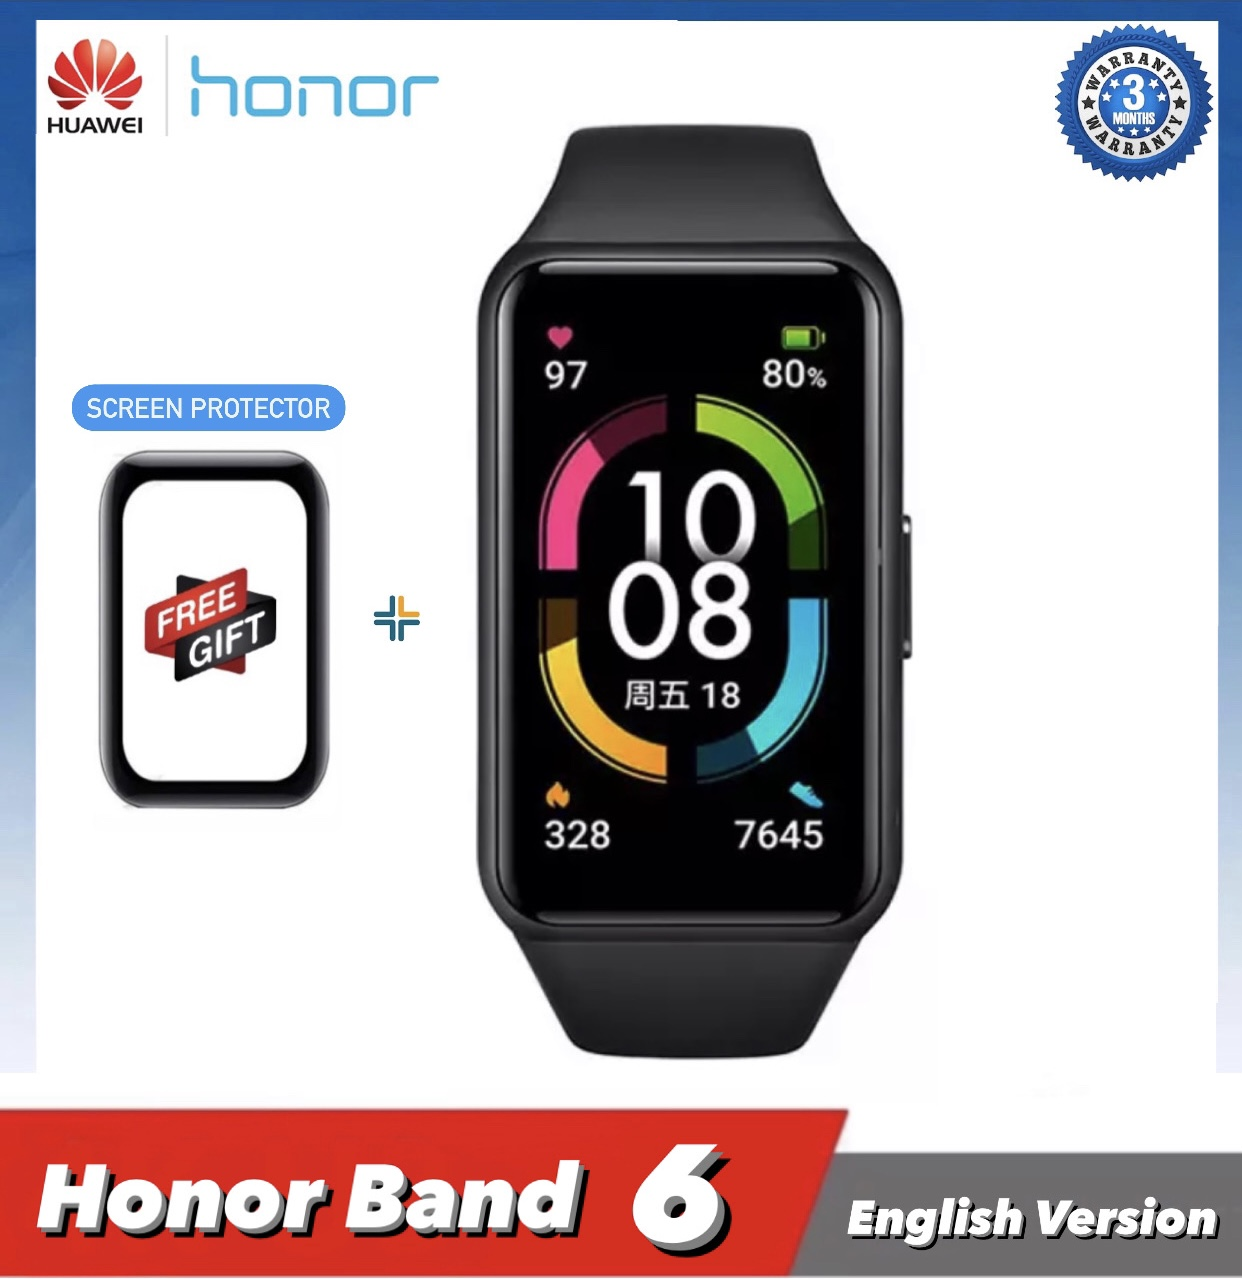 """Huawei Honor Band 6 Smart Fitness and Activity Tracker  SpO2 - 1.47"""" AMOLED Color Touchscreen - 15 Days Battery"""